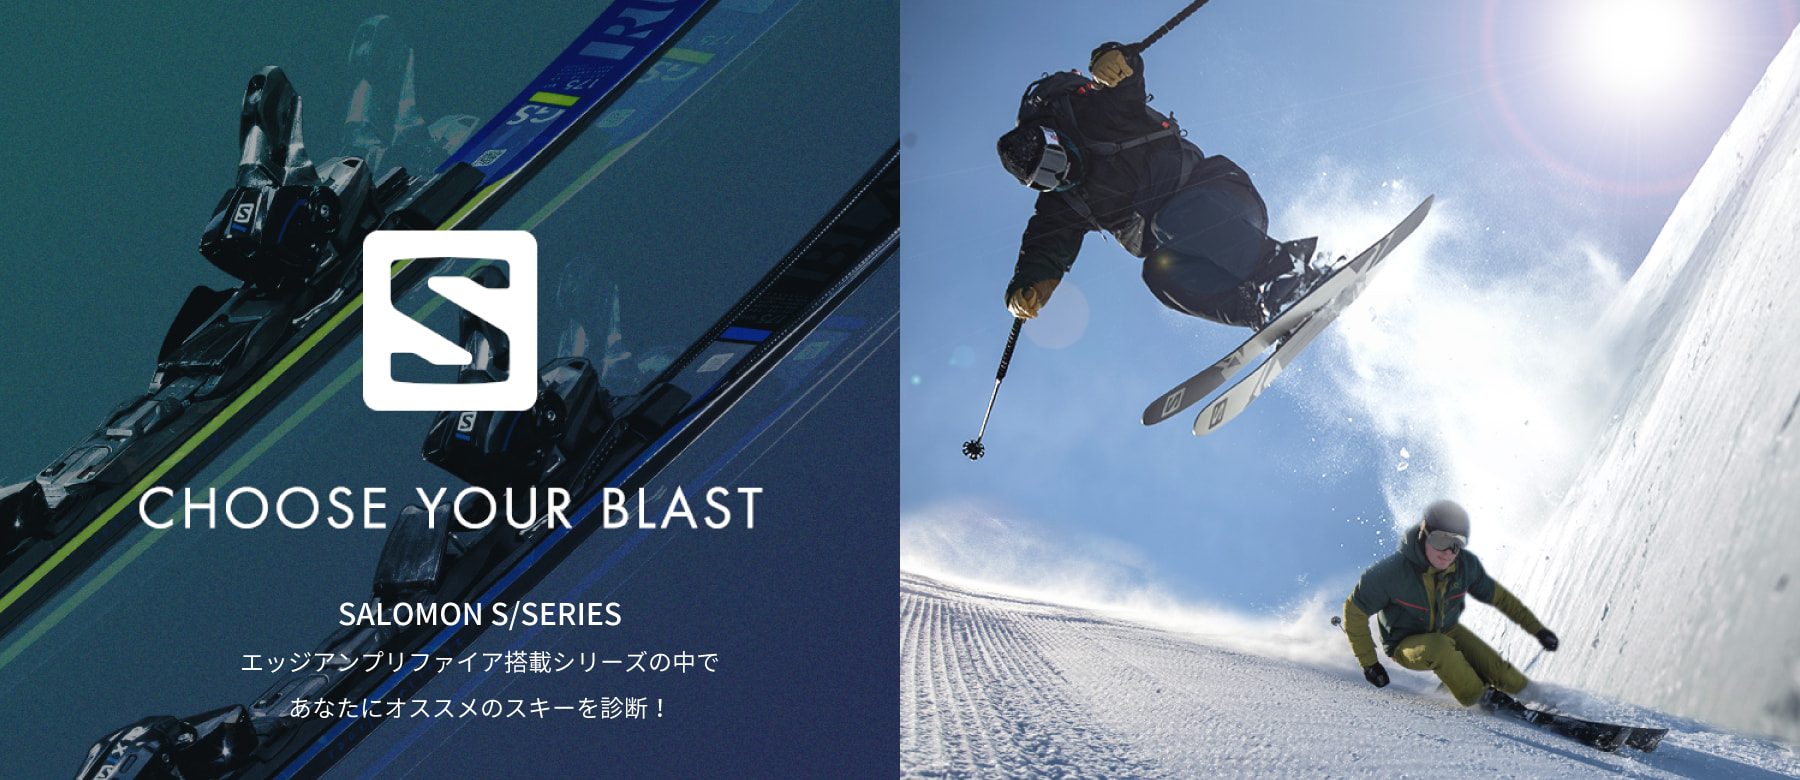 SALOMON SKI CHOOSE YOUR BLAST